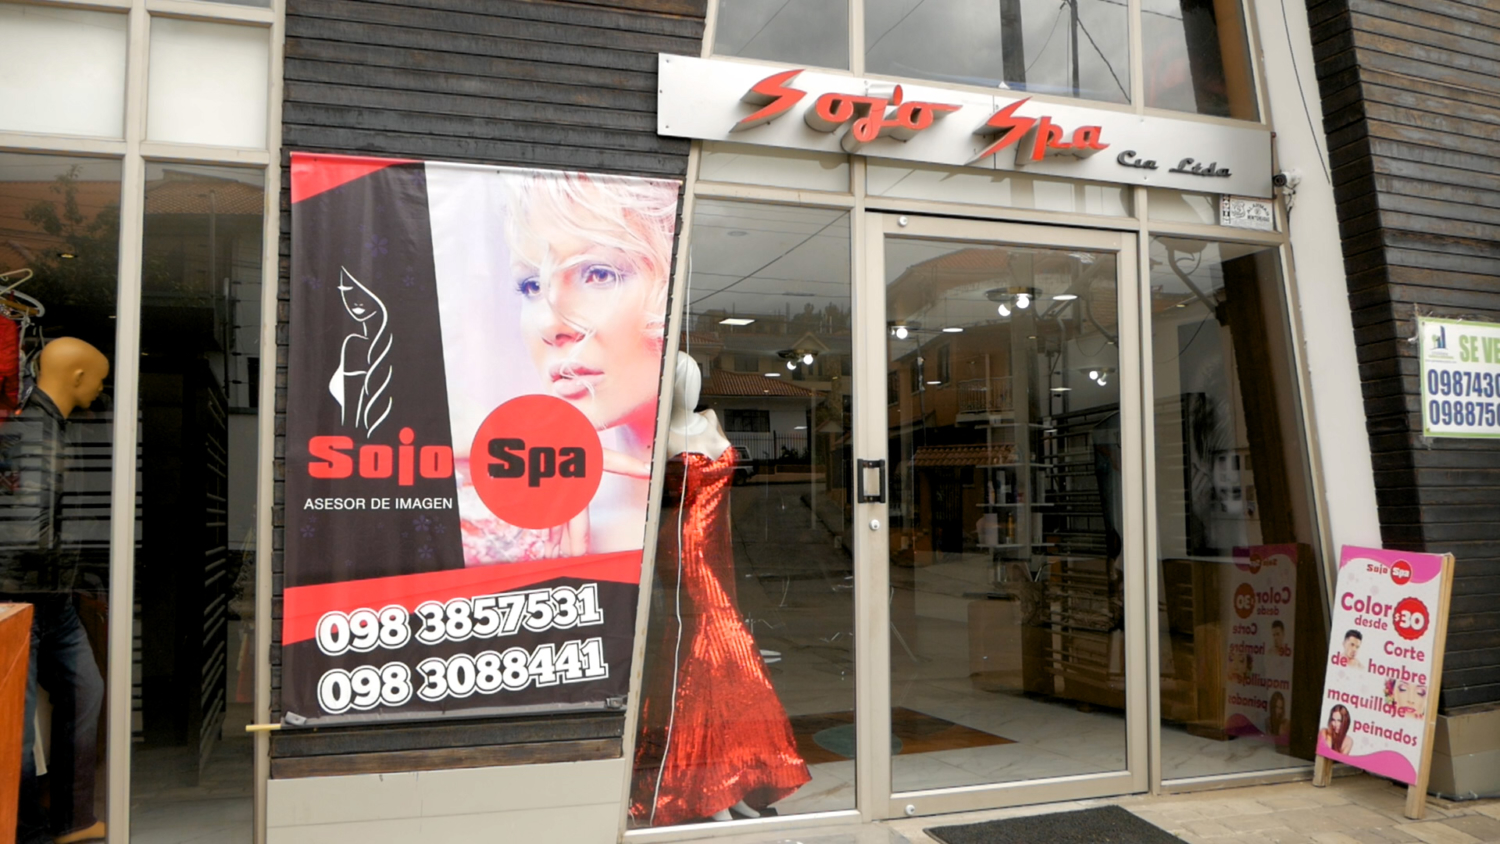 Sojo Spa Hair Salon Cuenca Ecuador Storefront